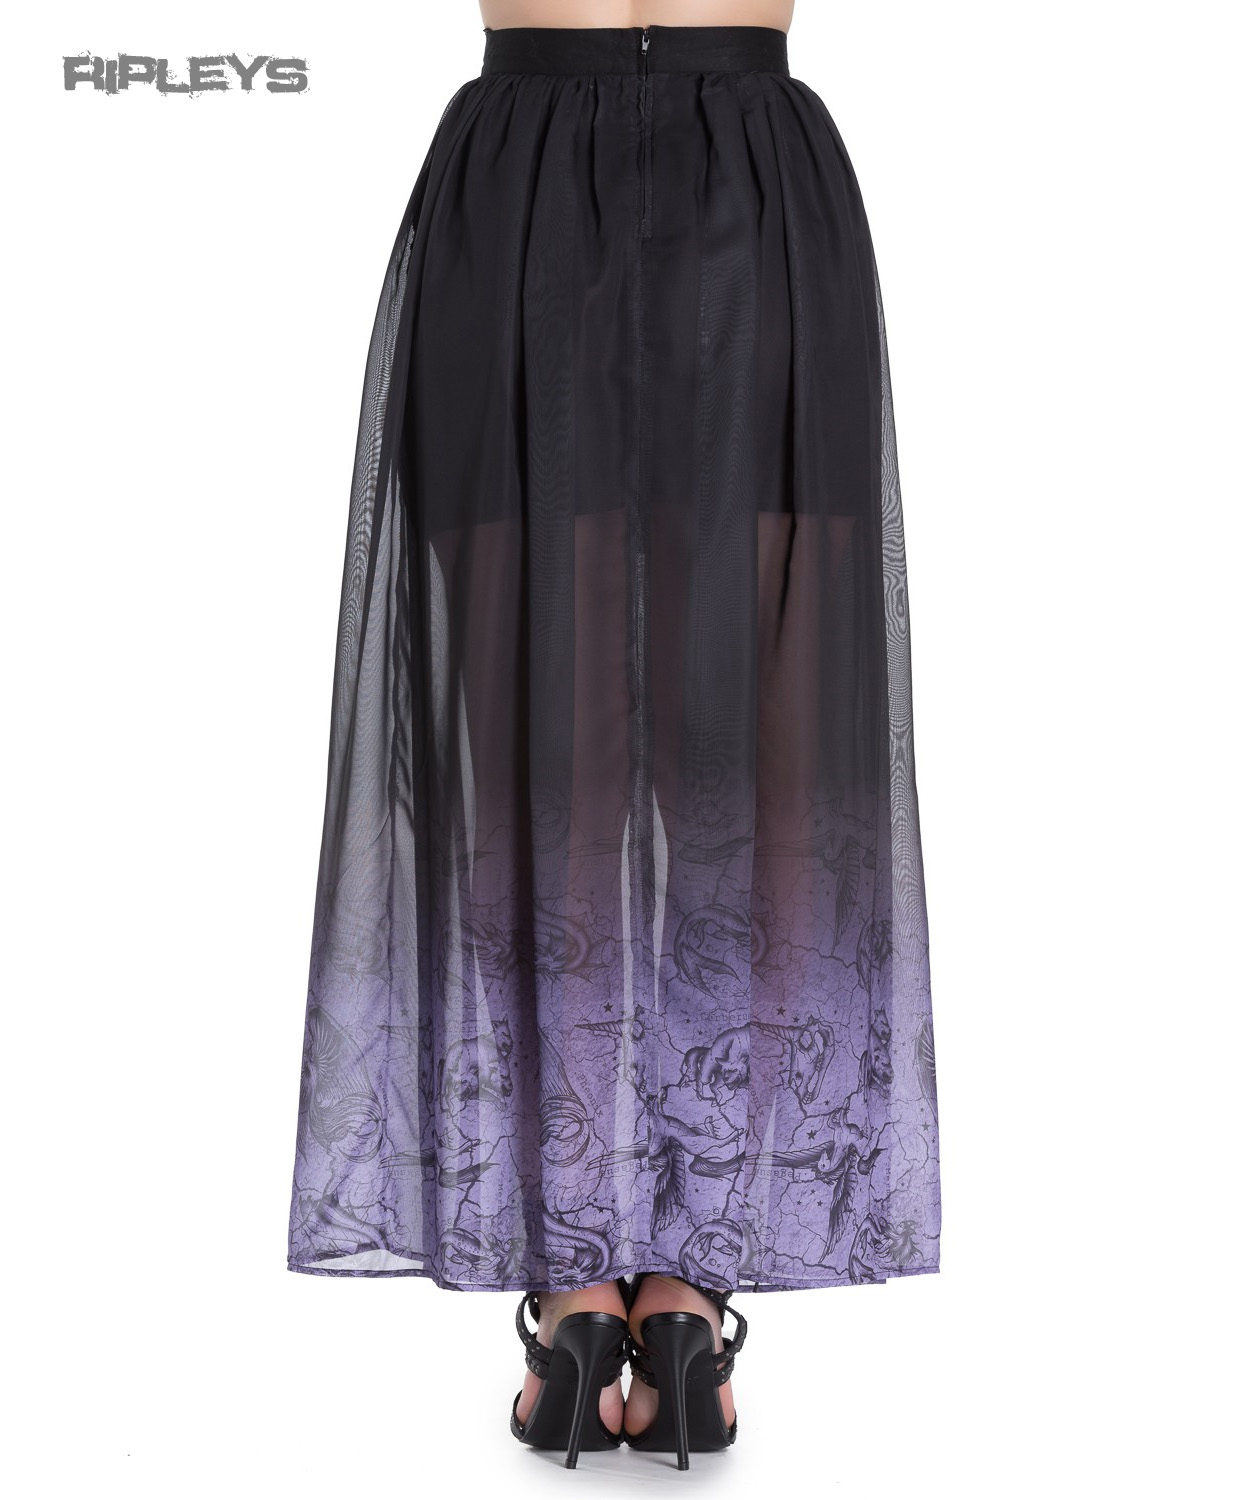 Hell-Bunny-Spin-Doctor-Goth-Purple-Mystical-EVADINE-Maxi-Skirt-All-Sizes thumbnail 16